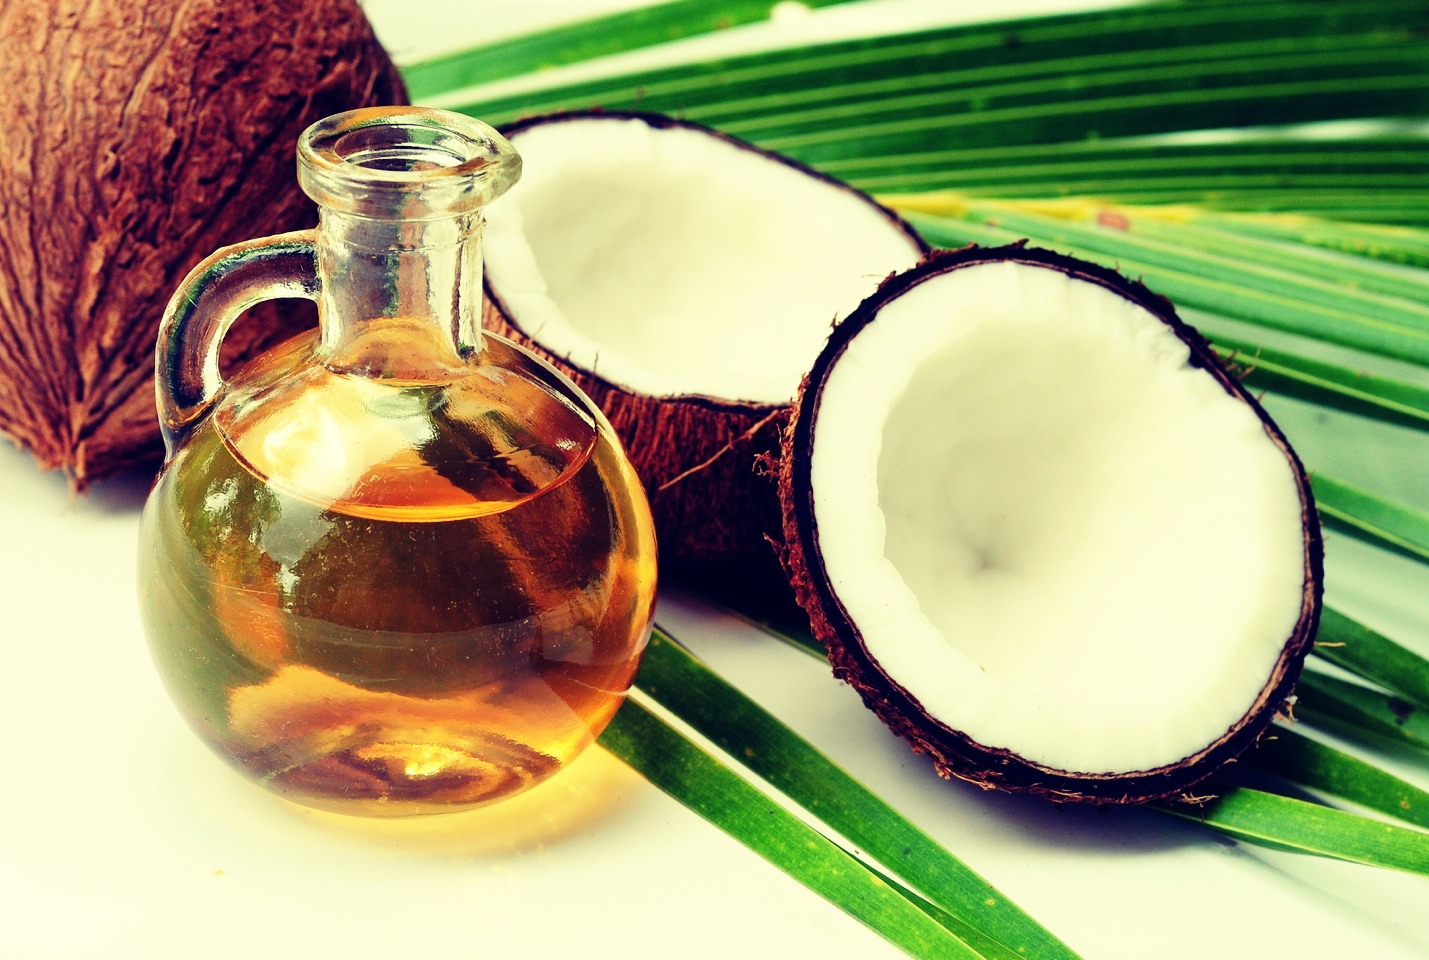 Just rub coconut oils under your arms where you've shaved and leave for 10 minutes. It's best to keep massaging in the coconut oil. After 10 minutes wash it off and you'll notice that the dark circles have disappeared!